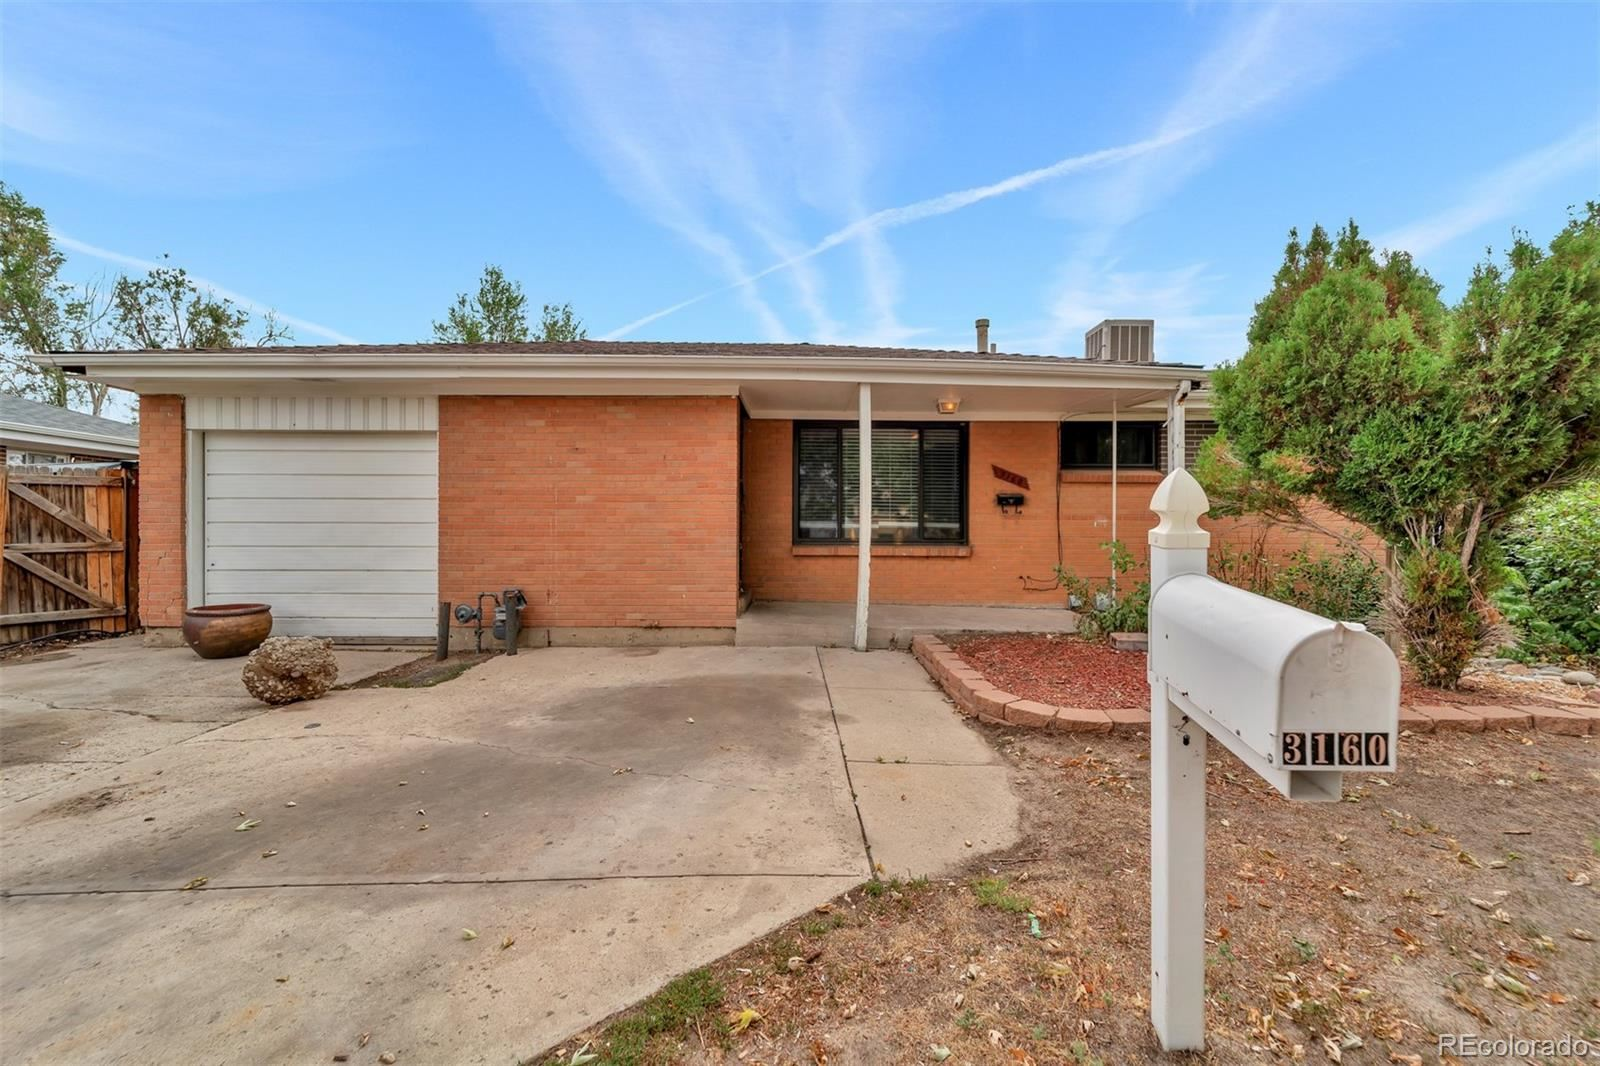 3160 Atchison Street, Aurora, CO 80011 - MLS#: 7949969